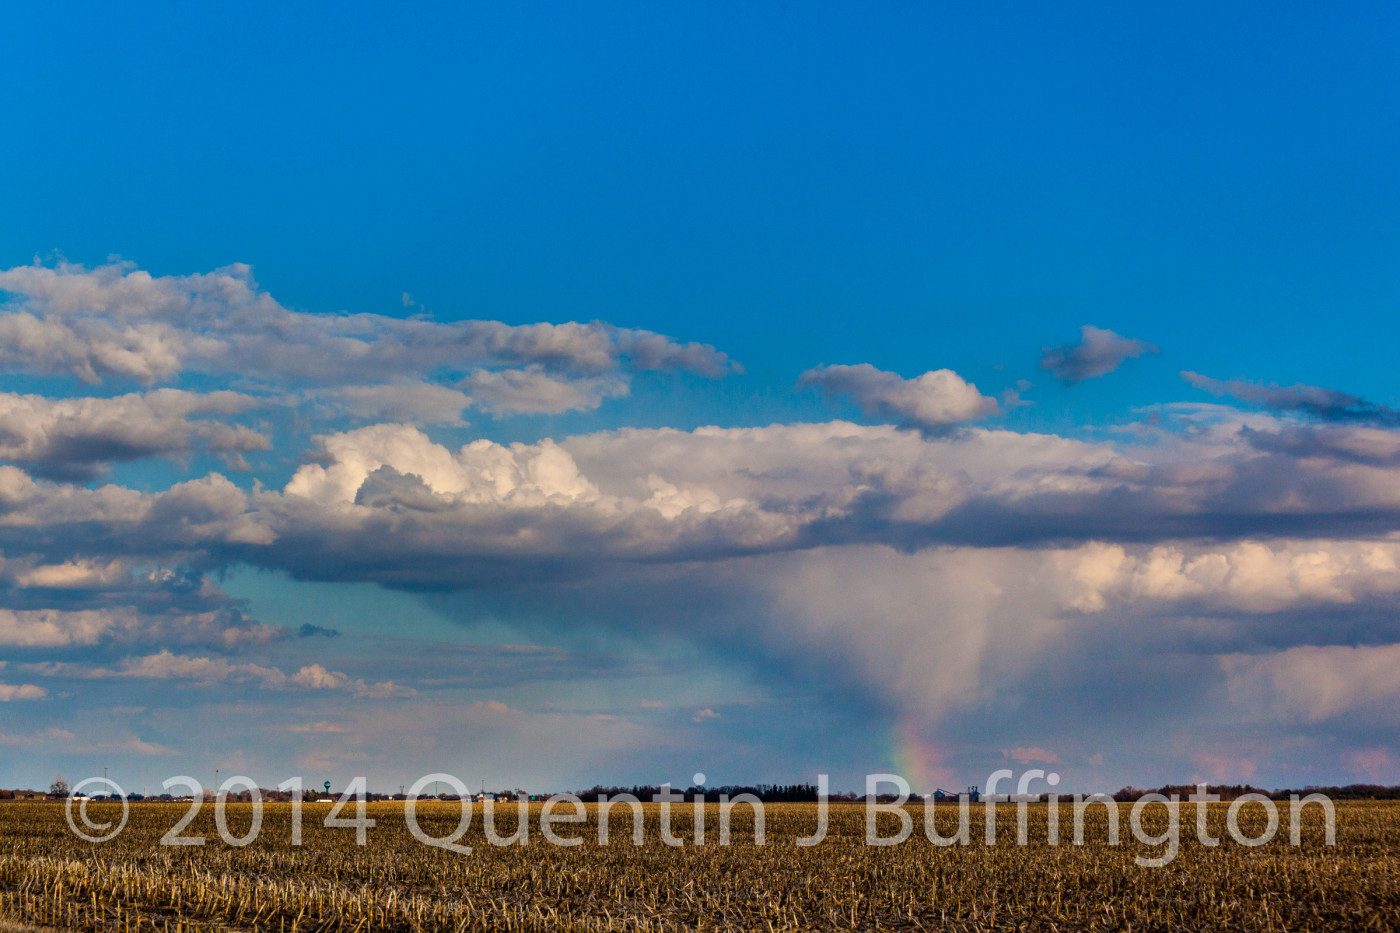 A distant spring cloudburst throwing a rainbow in the late afternoon sun.